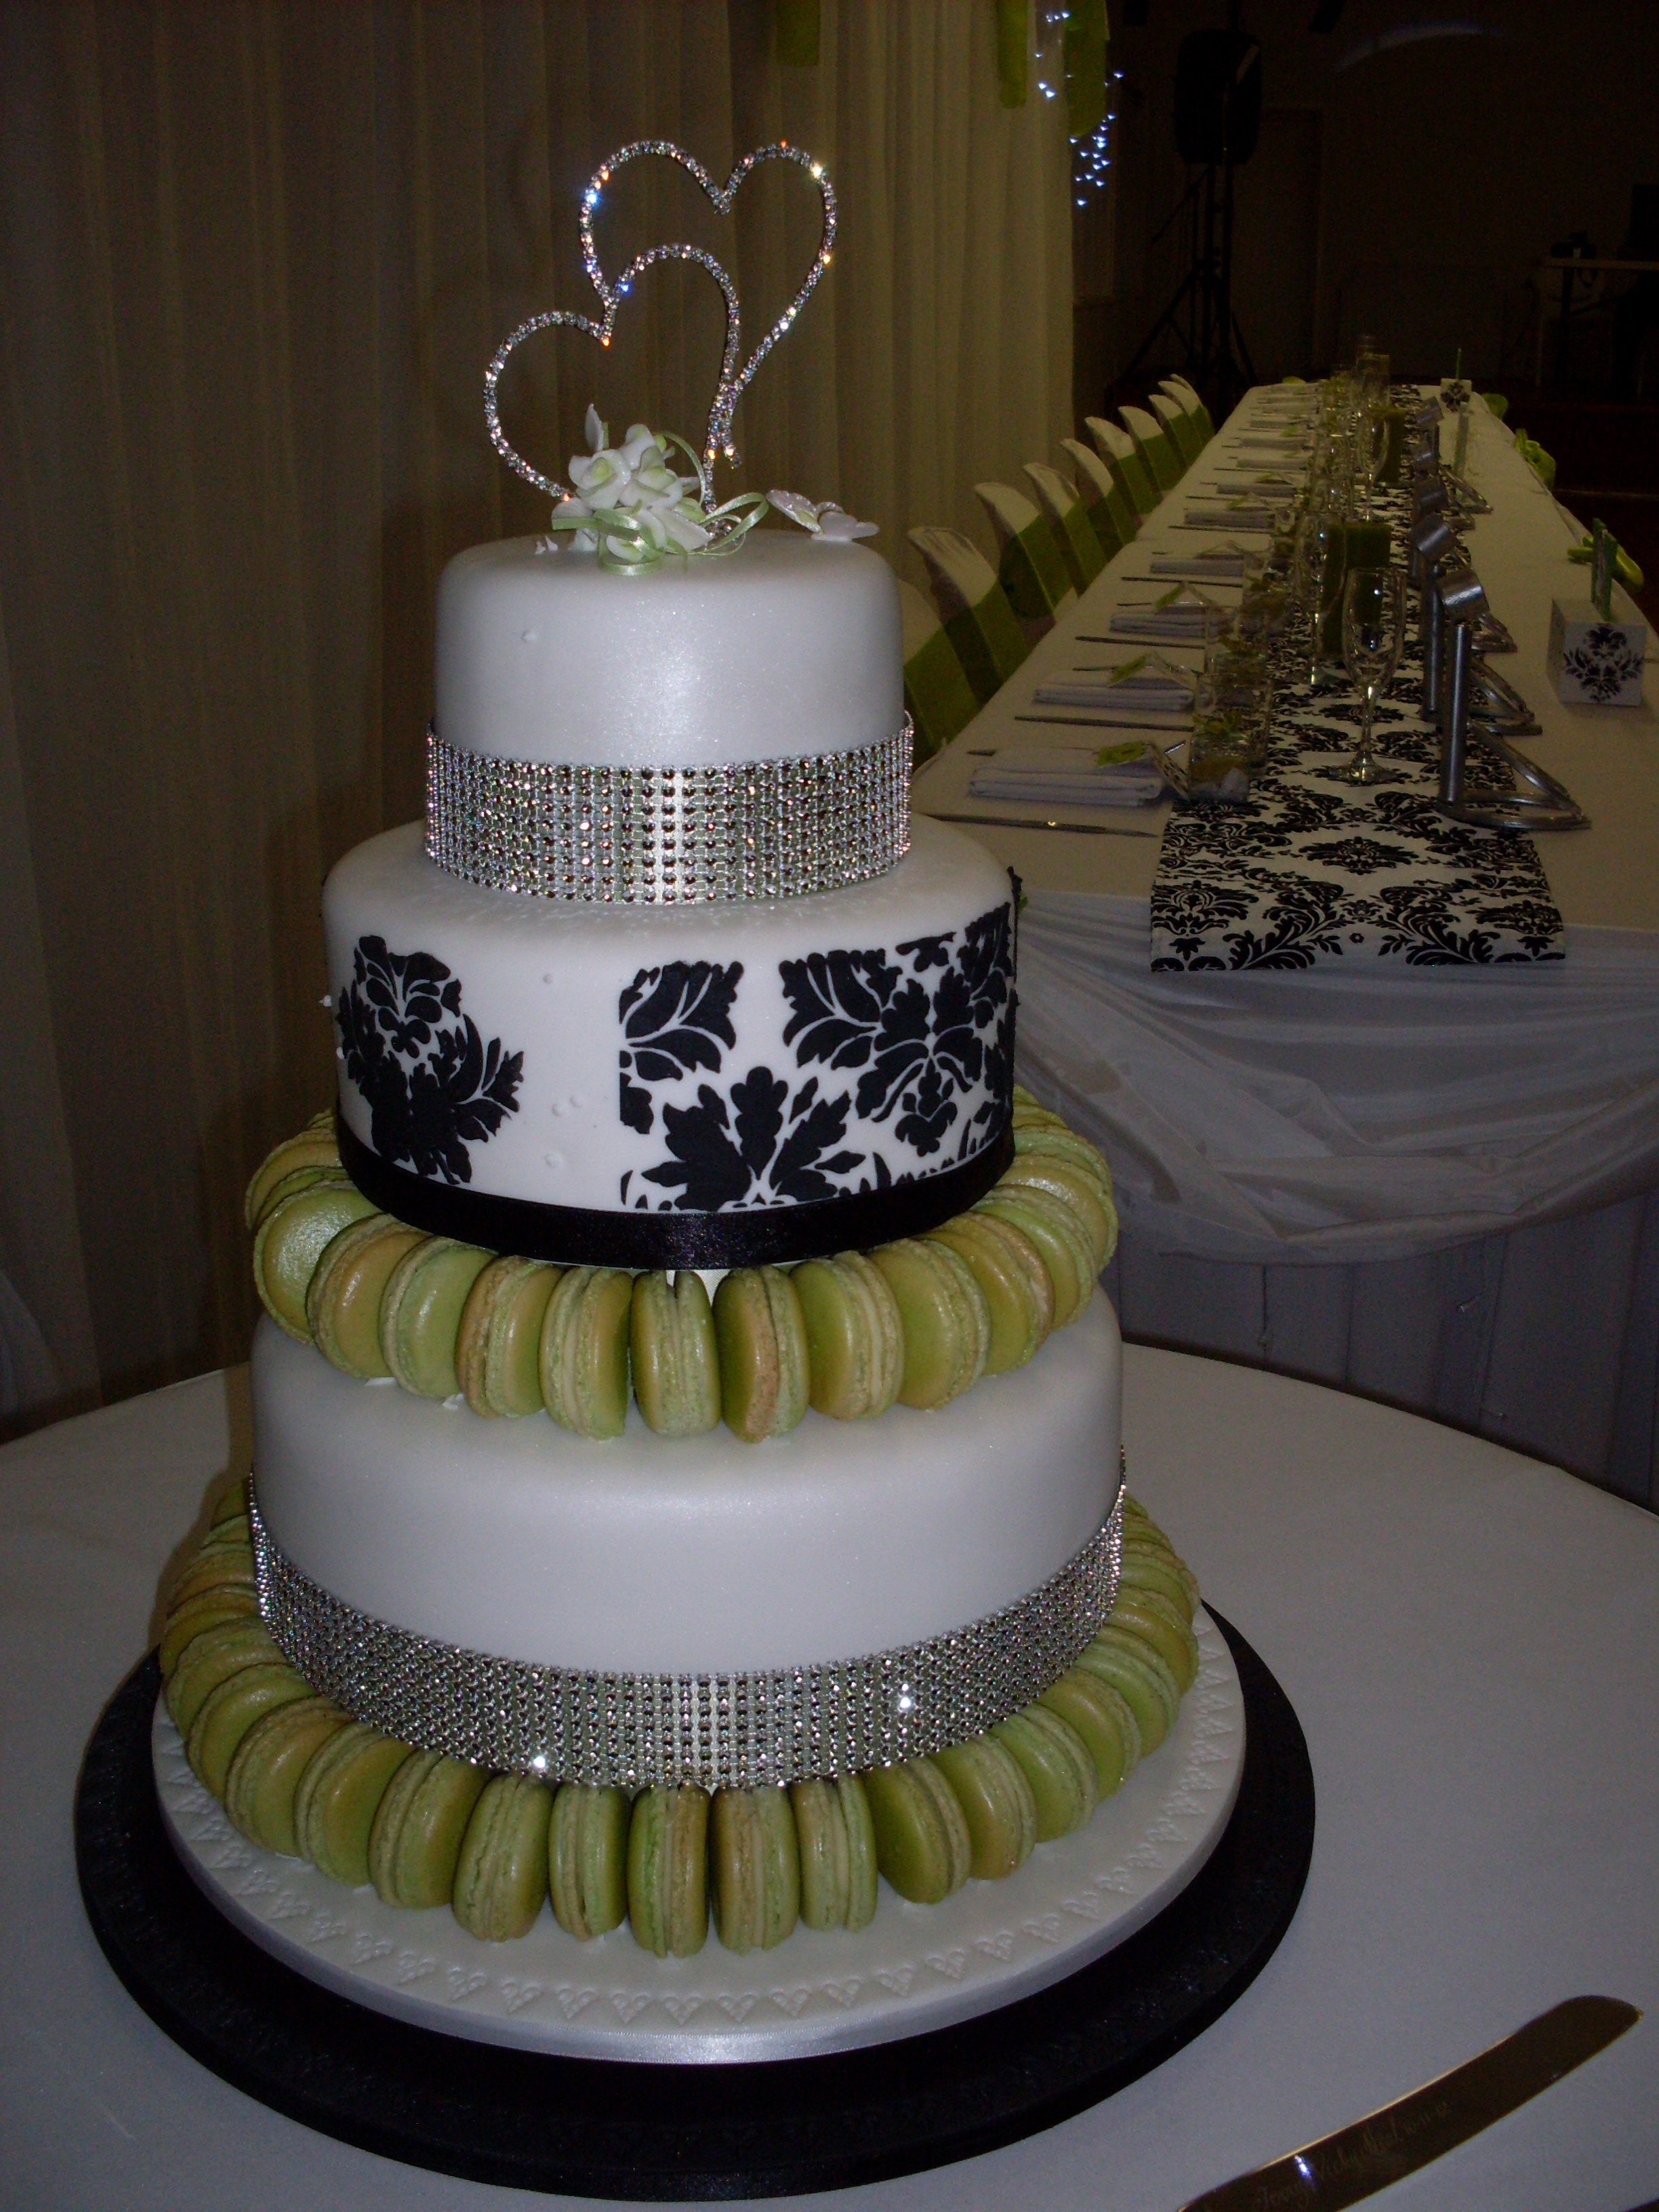 Cake Decorating Course Toowoomba : Magnificent Nine Wedding Cakes Toowoomba